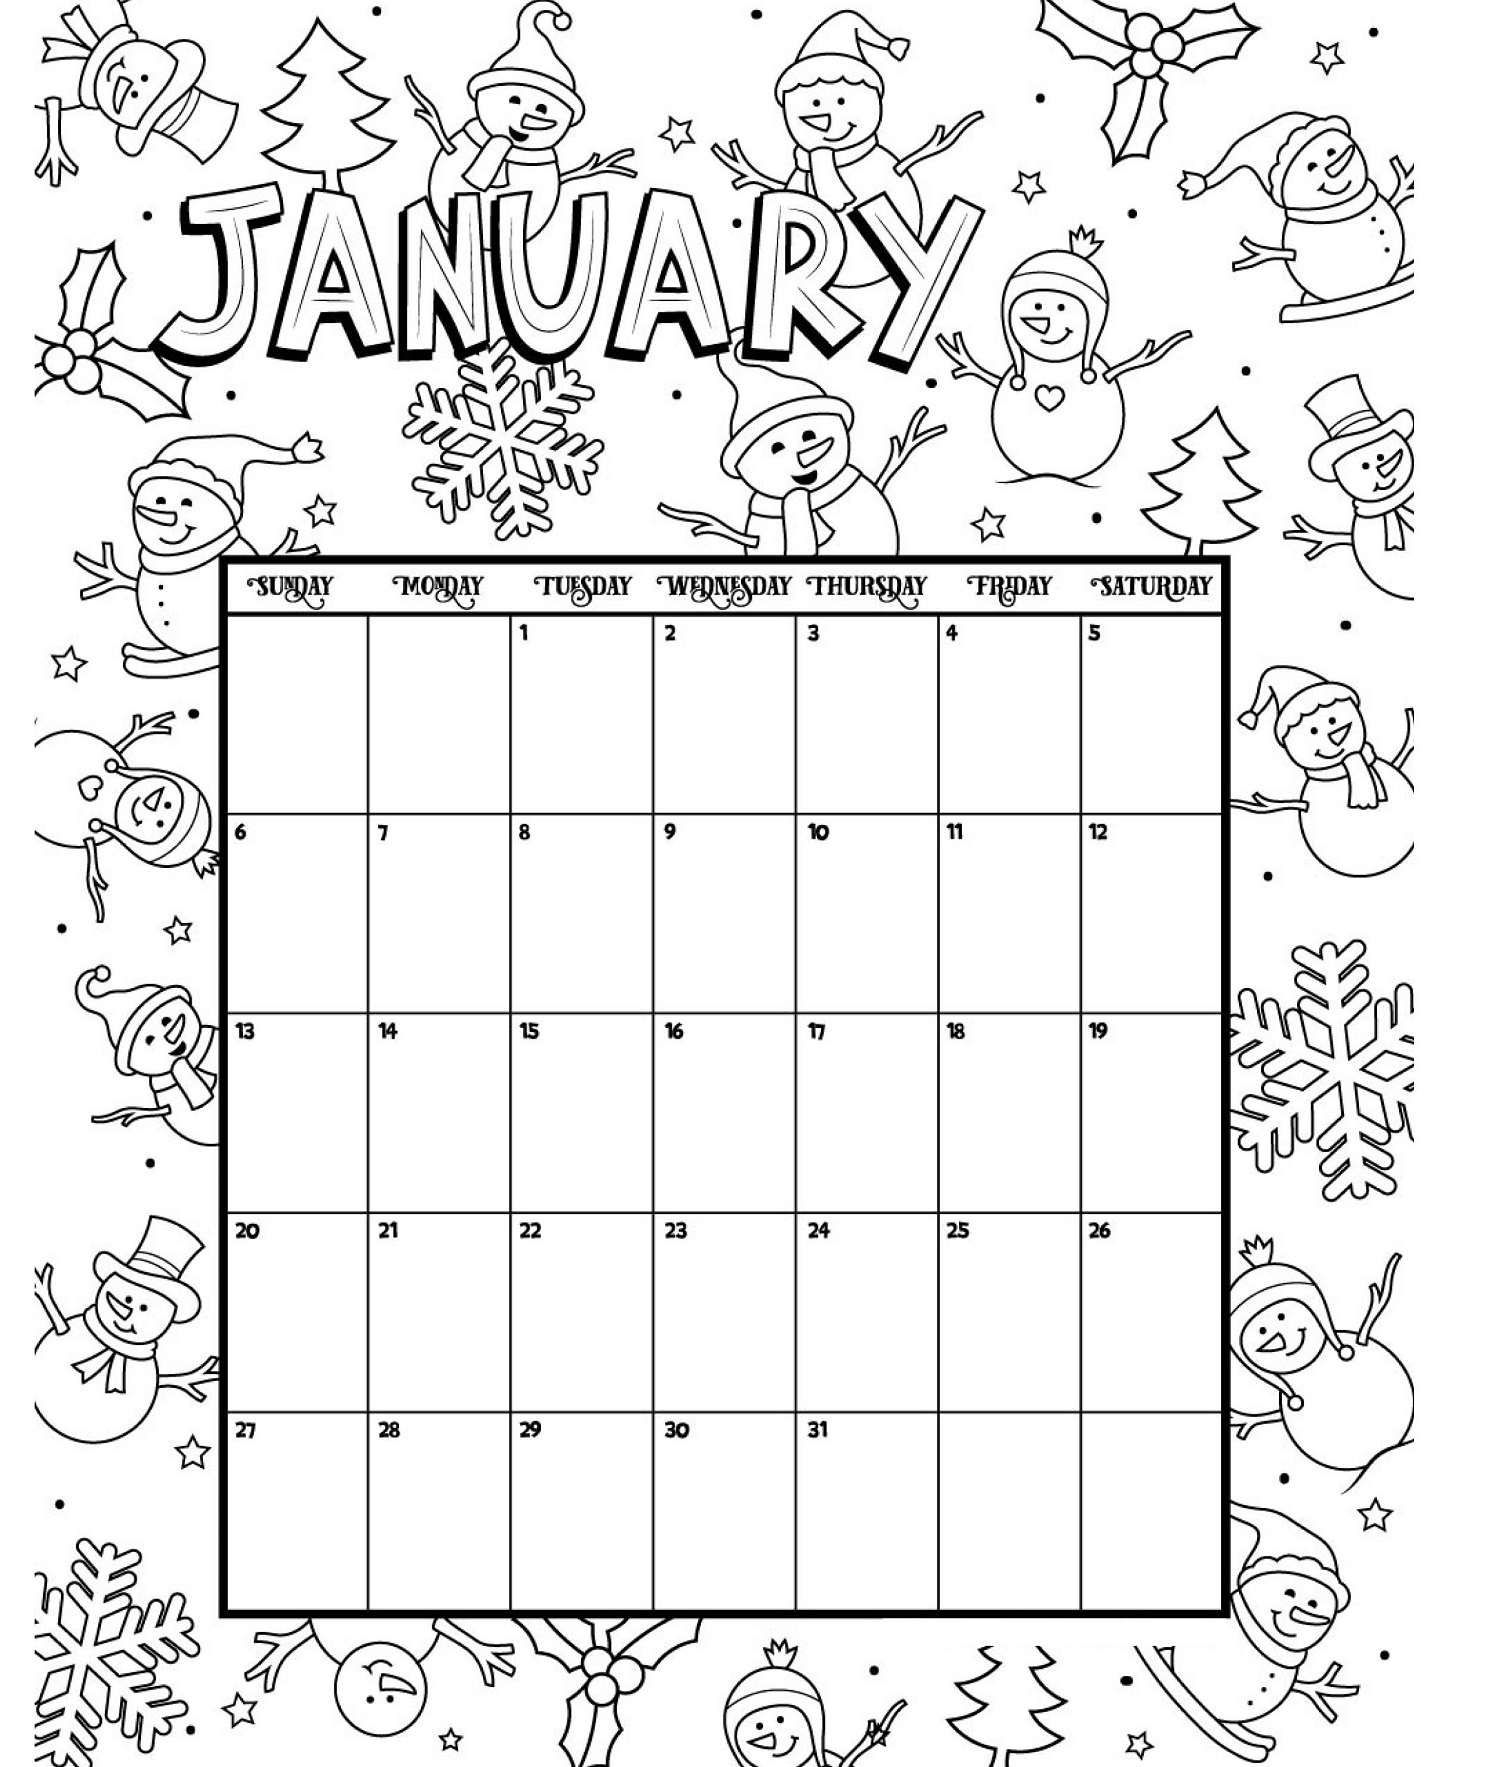 Printable Coloring Calendar January 2019 January Printable Coloring Calendar 2019 | Calendar 2019 | Kids